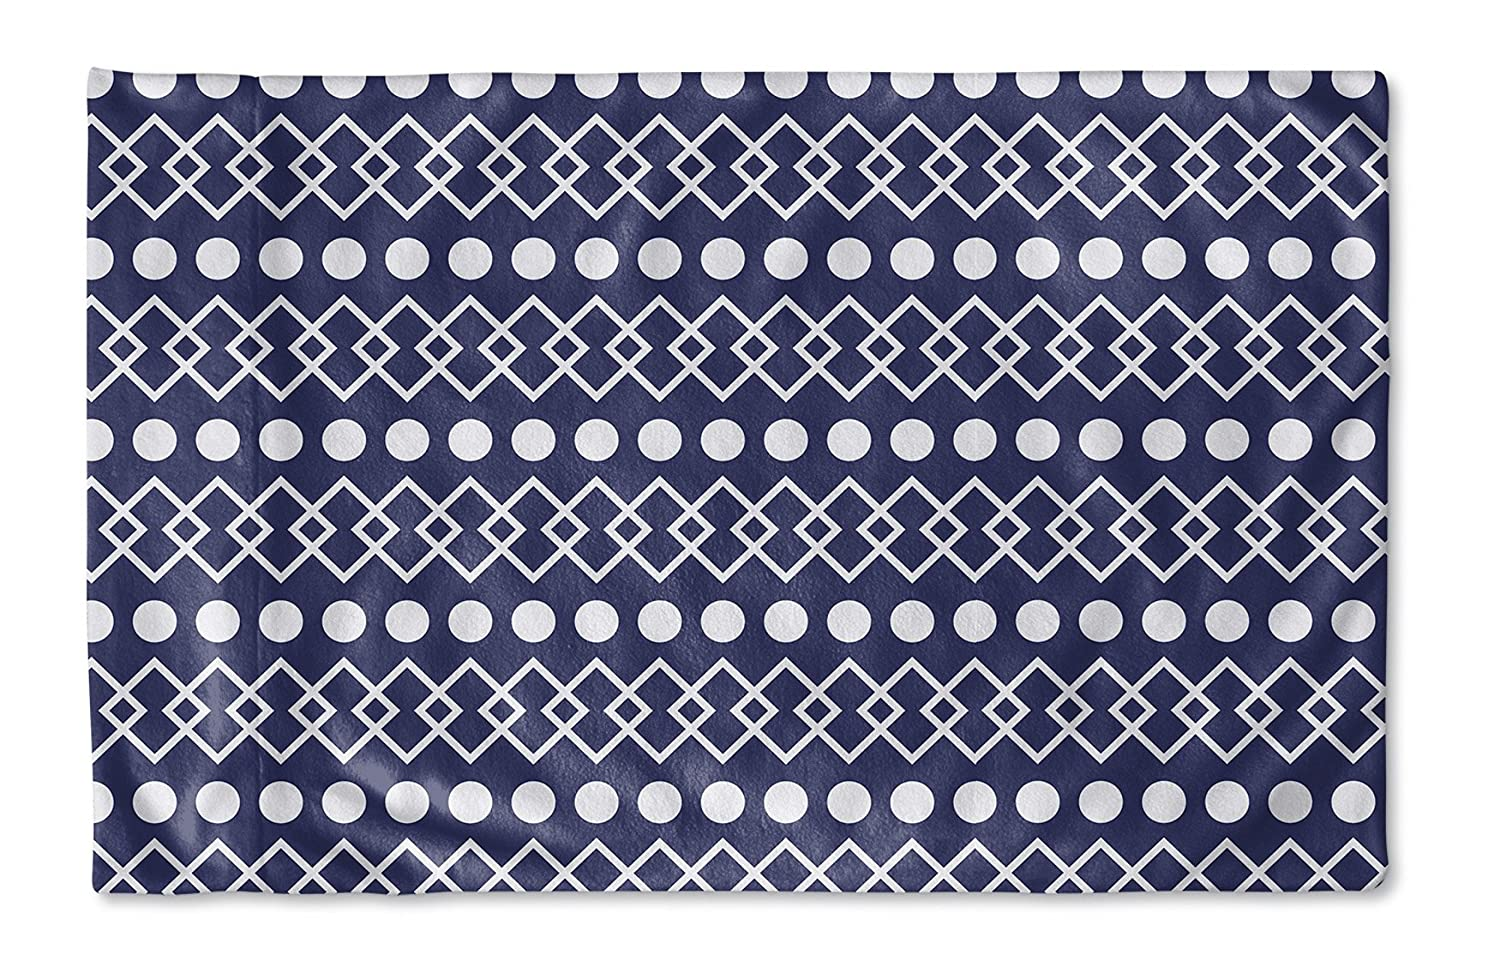 Dots Pillow Case, KAVKA Designs Chains - SALTWATER Collection Size: 30X20X1 - Blue//White TELAVC013PC32